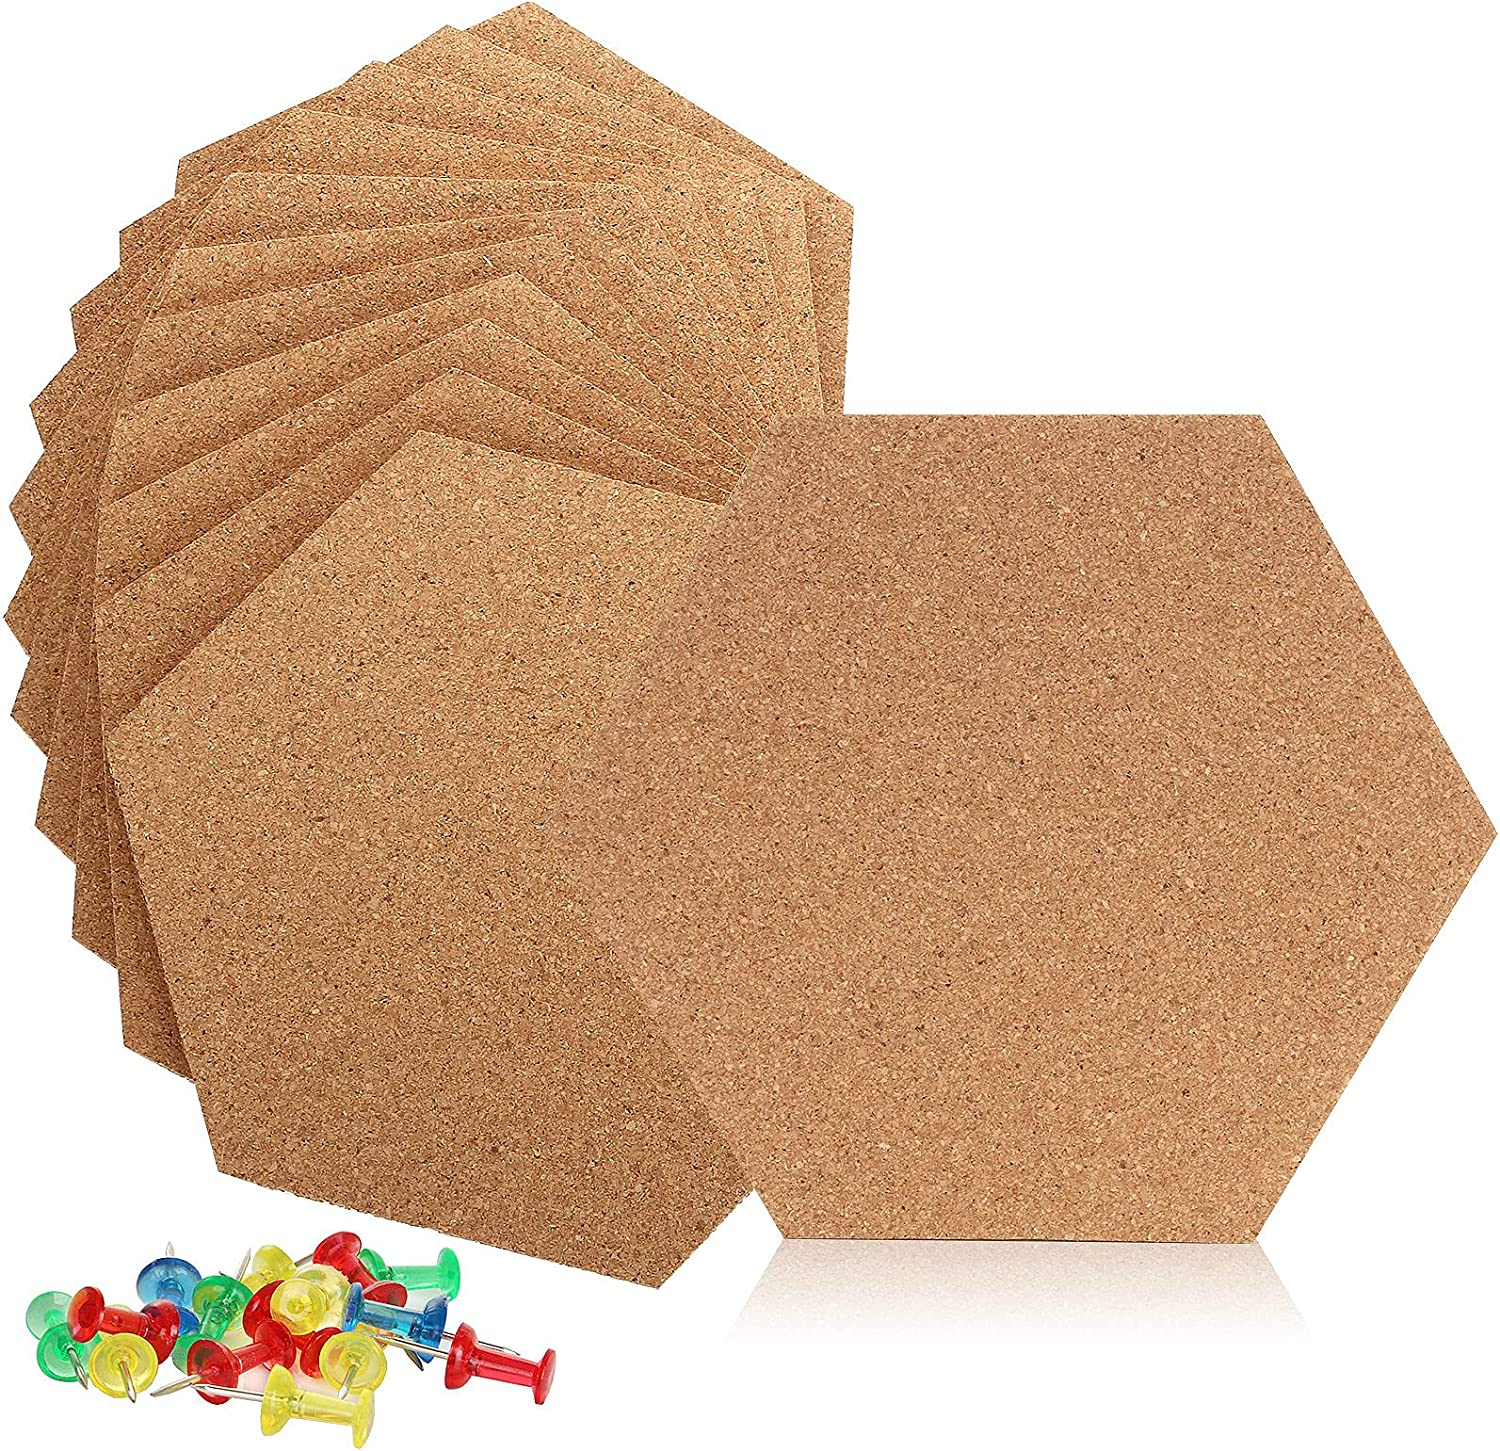 12 PCS Self-Adhesive Cork Board Tiles, 8.5 x 7.3 Inches Wall Bulletin Board, Hexagon Cork Boards for Wall, Corkboard Tiles with 50 Multi-Color Push Pins for Home Office Decor